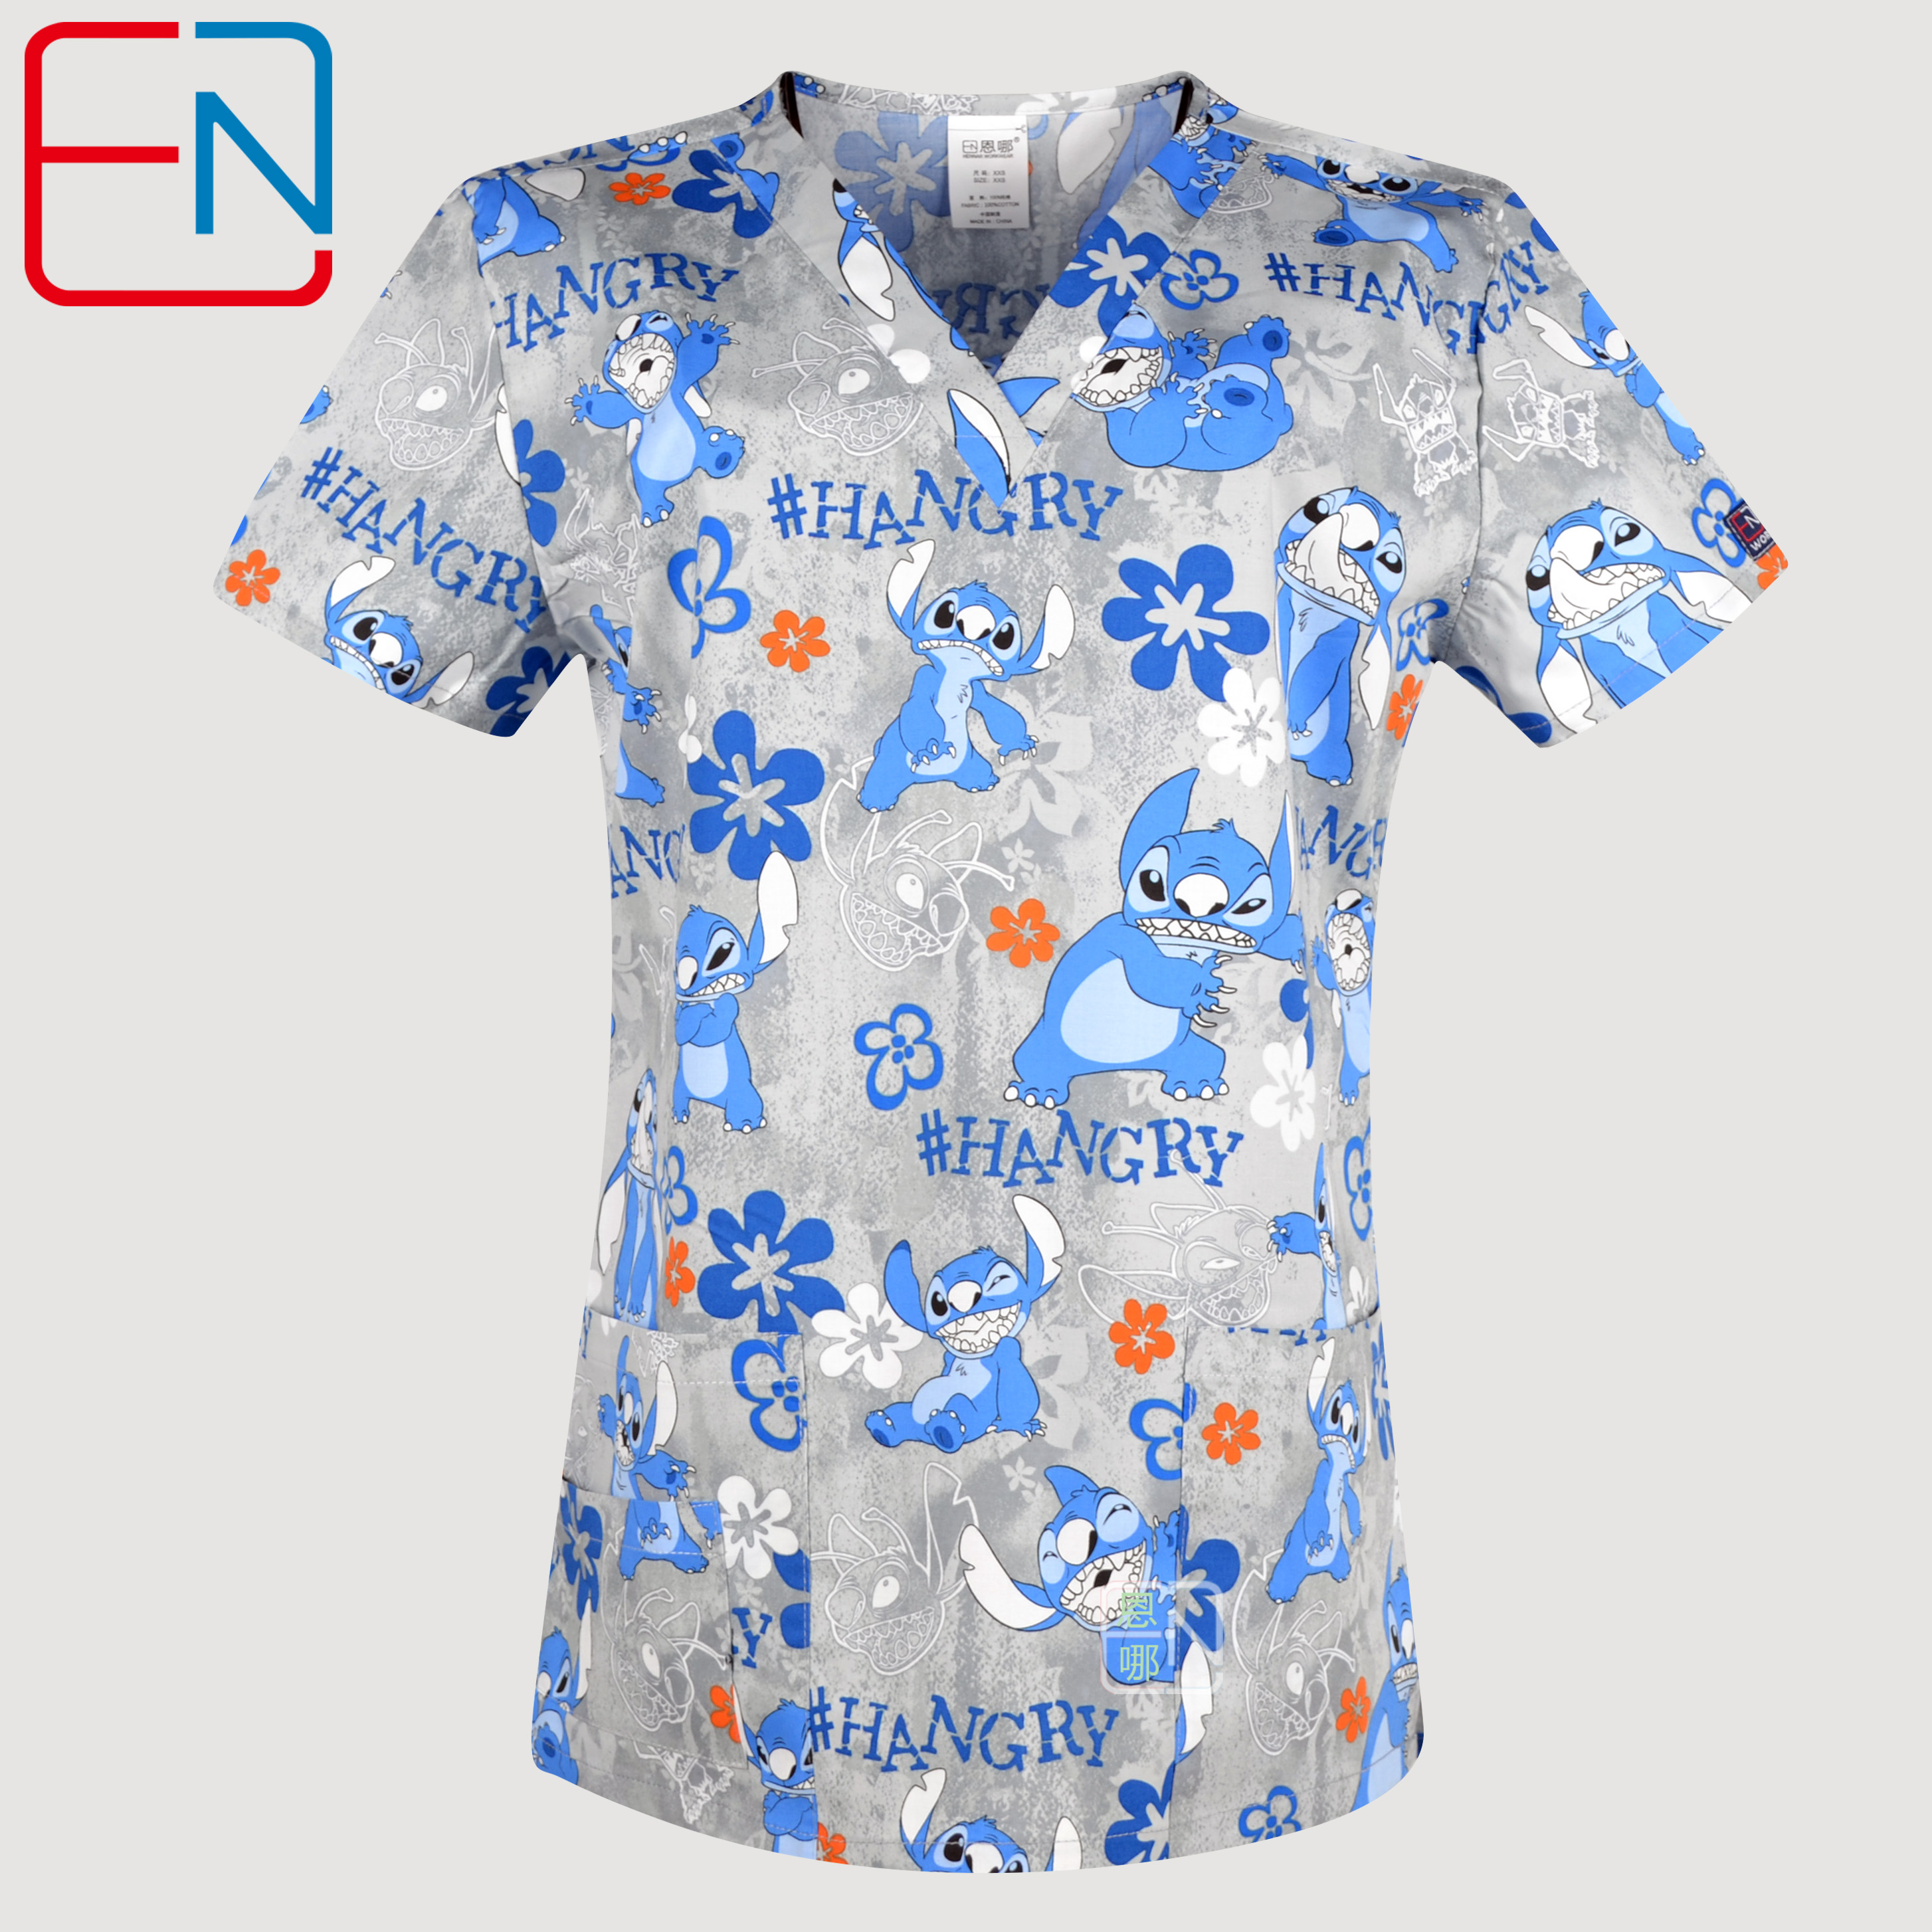 NEW Hennar Women Scrub Top With V-Neck 100% Cotton Print Surgical Medical Uniforms Hospital Nurse Scrub Tops For Women